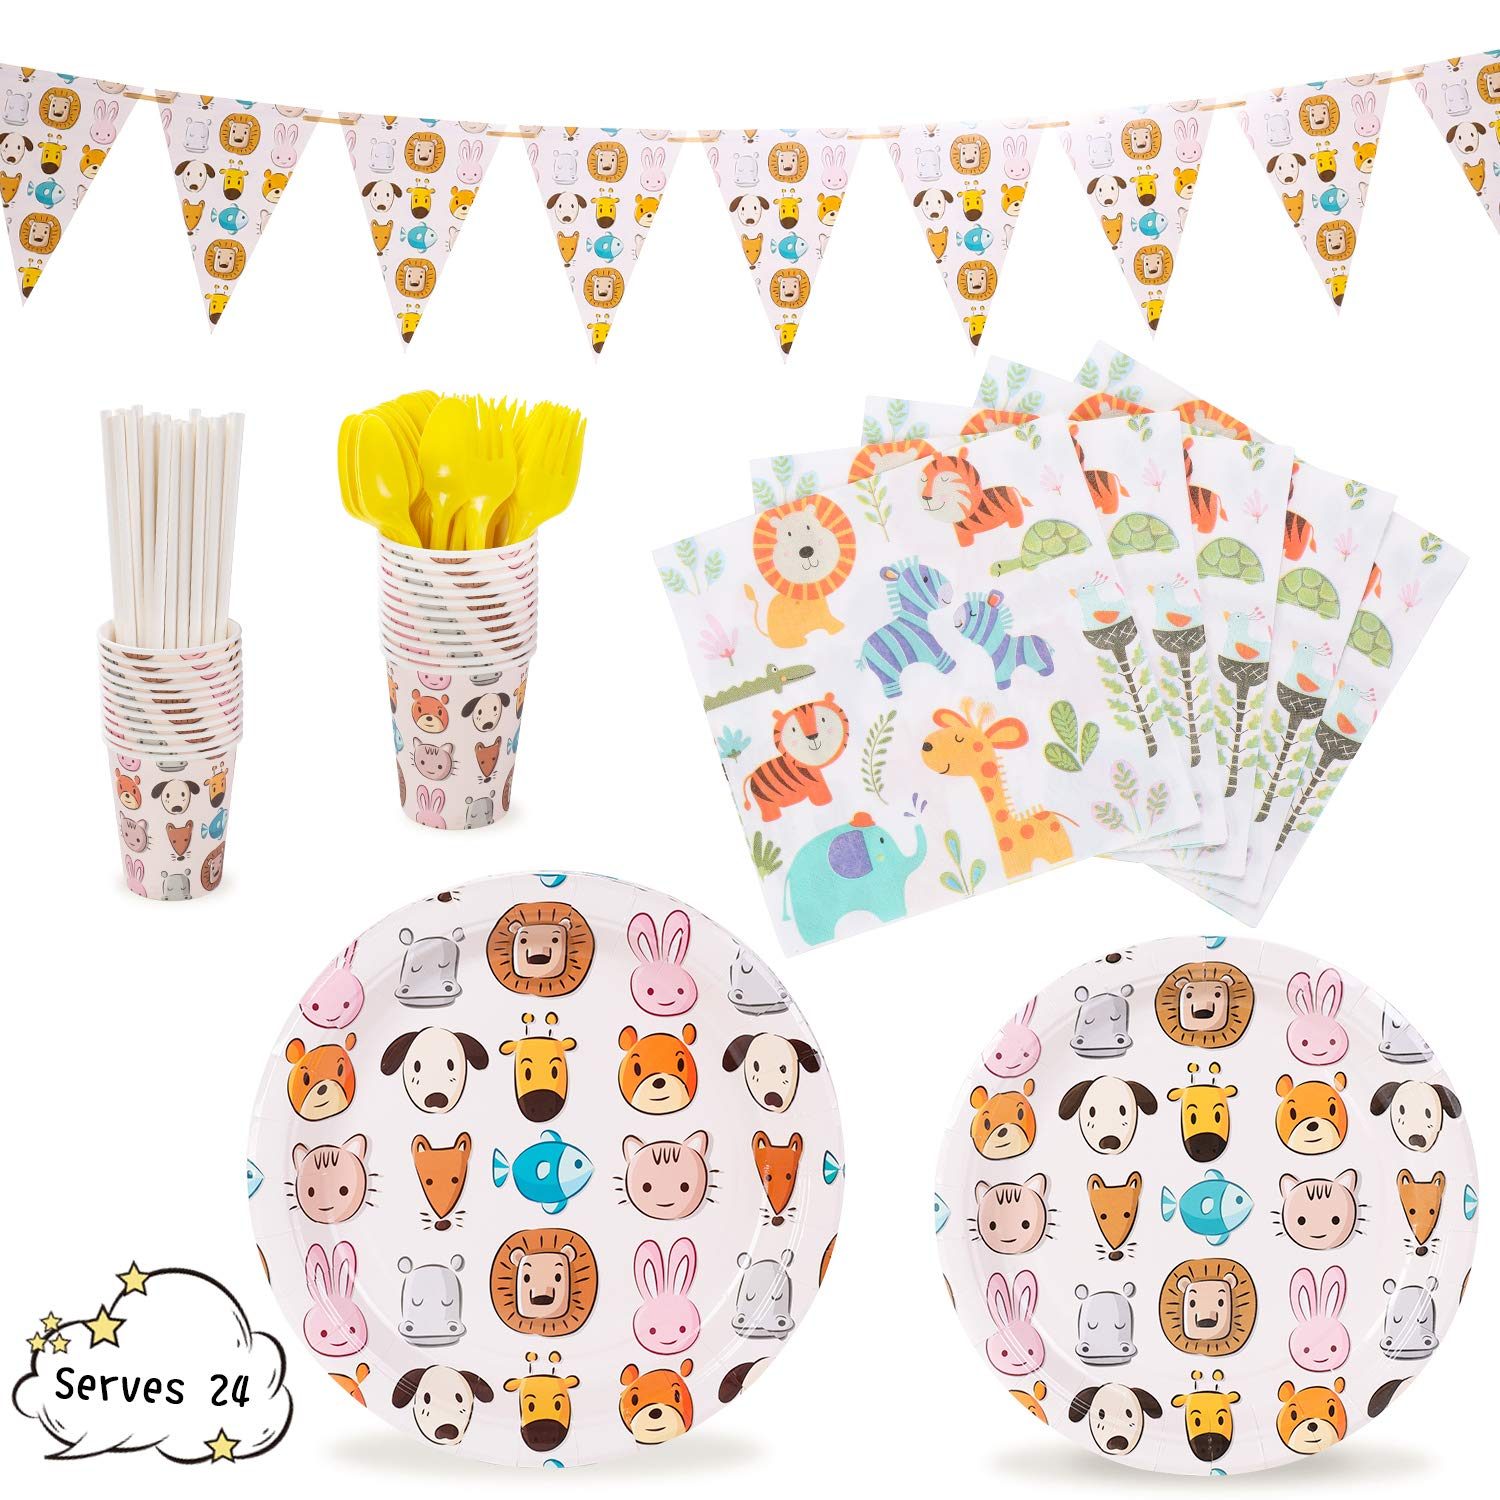 Animal Party Supplies Decorations Animal-Themed Jungle theme Zoo Pets Dinnerware 169 Pcs Serves 24 Includes 7''&9'' Paper Plates Napkins Straws Knives Forks Cups Banner For Birthday, Animals Themed Parties, Serves 24 by Party Family